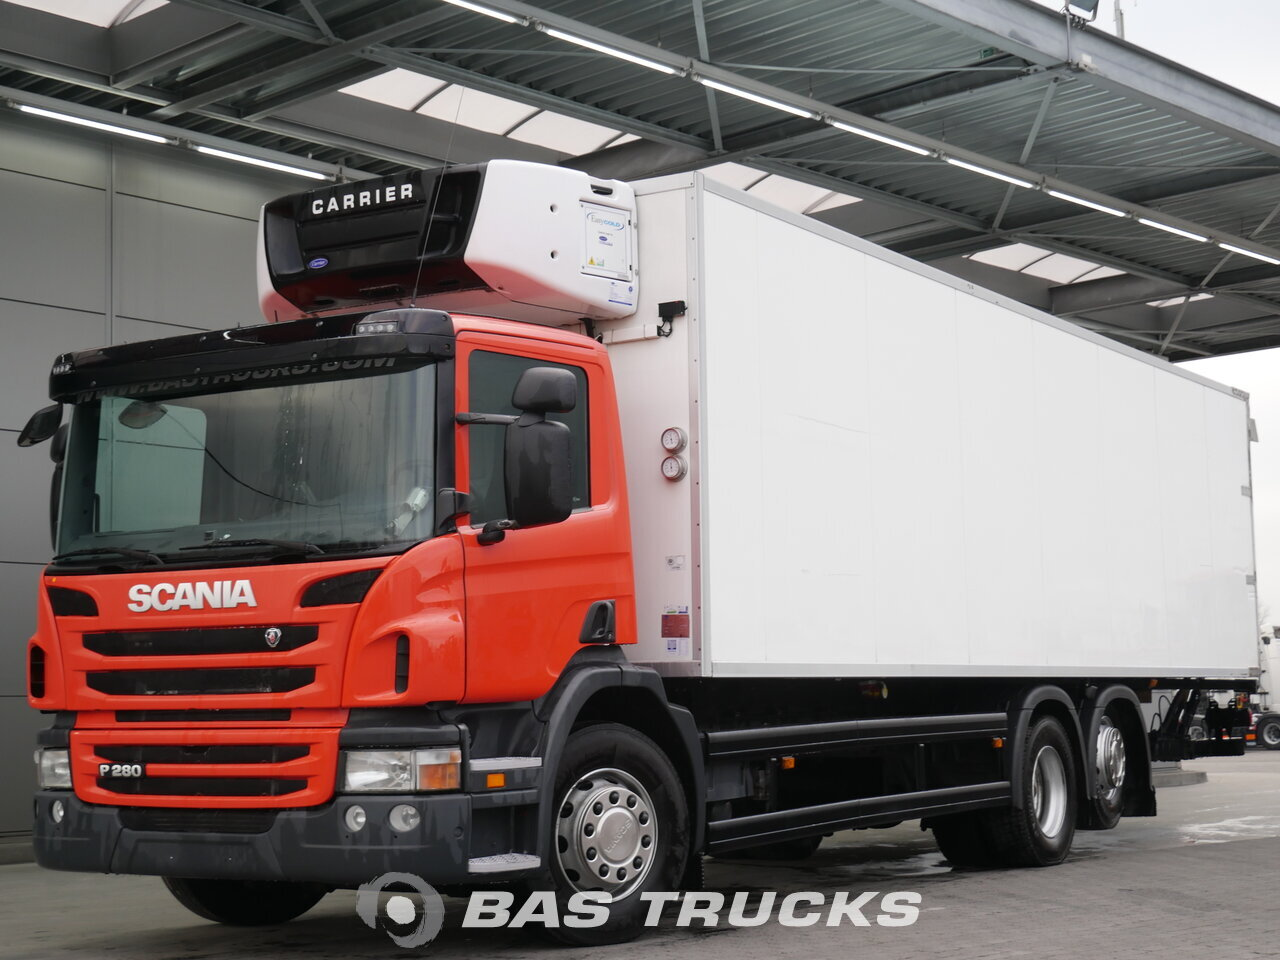 For sale at BAS Trucks: Scania P280 6X2 03/2012